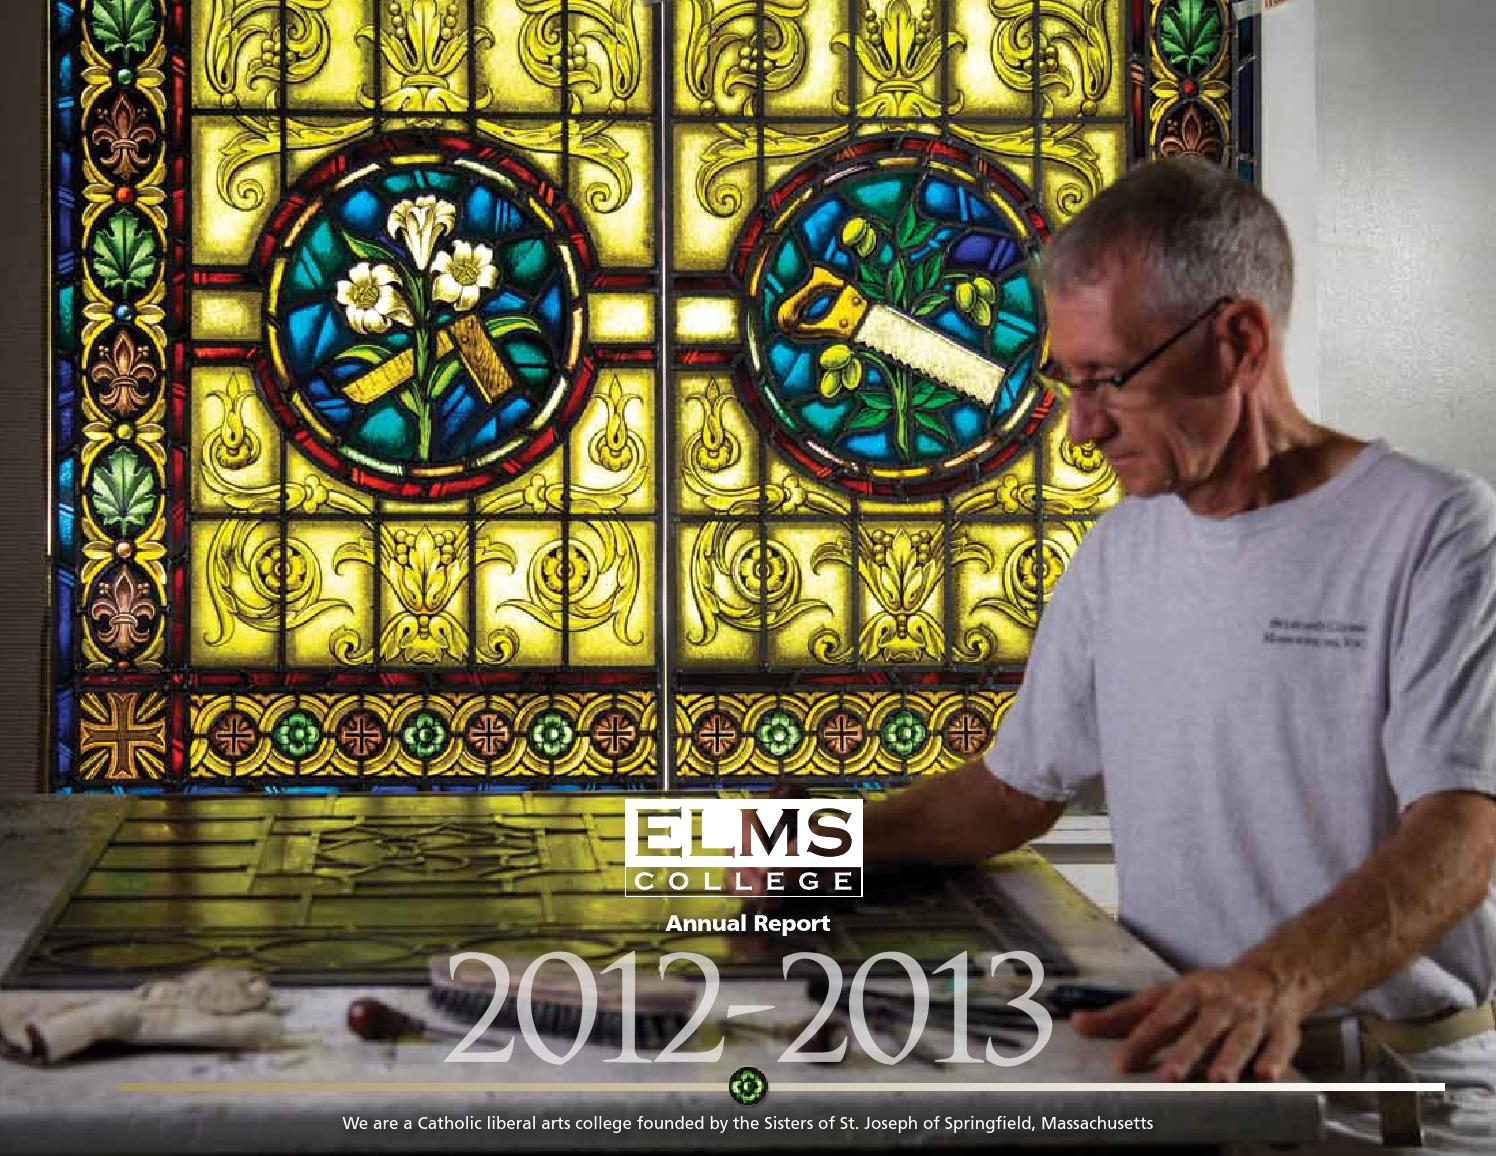 annual report 2012 2013 by elms college issuu